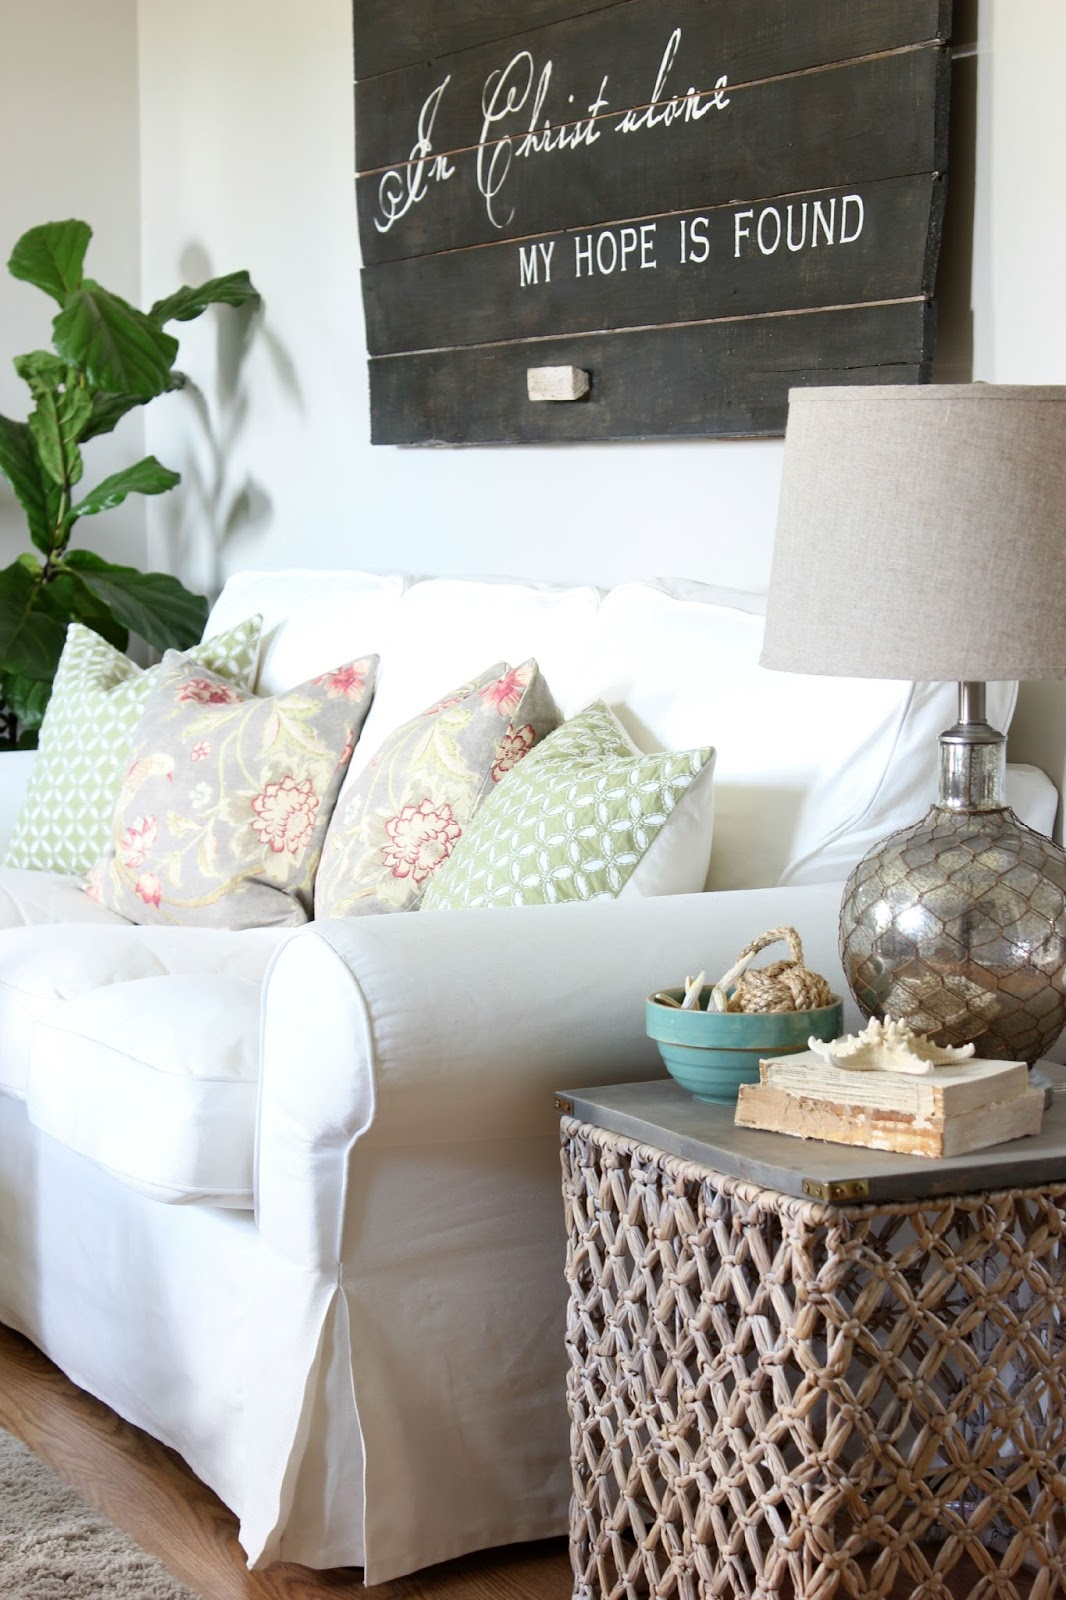 I Did Show Some Restraint, But This Wicker Basket (and A Few Other Things)  Did Come Home With Me. I Knew It Could Make A Great Summertime End Table In  The ...